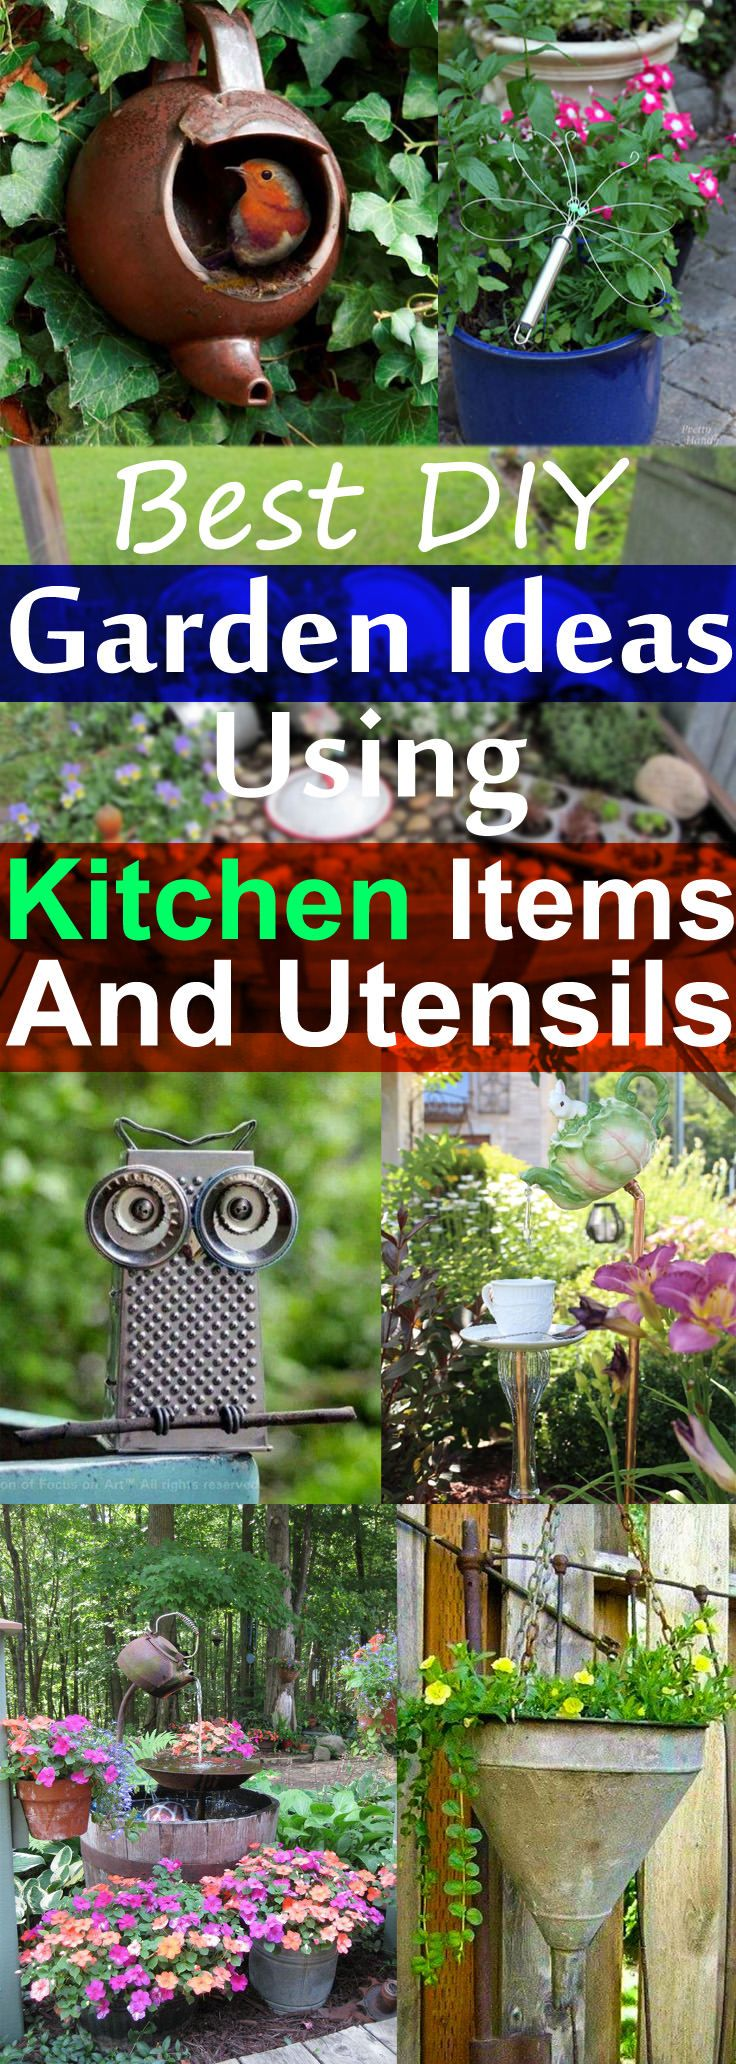 The Secret Garden Kitchen Nightmares 17 Best Ideas About Mystic Garden On Pinterest Secret Gardens